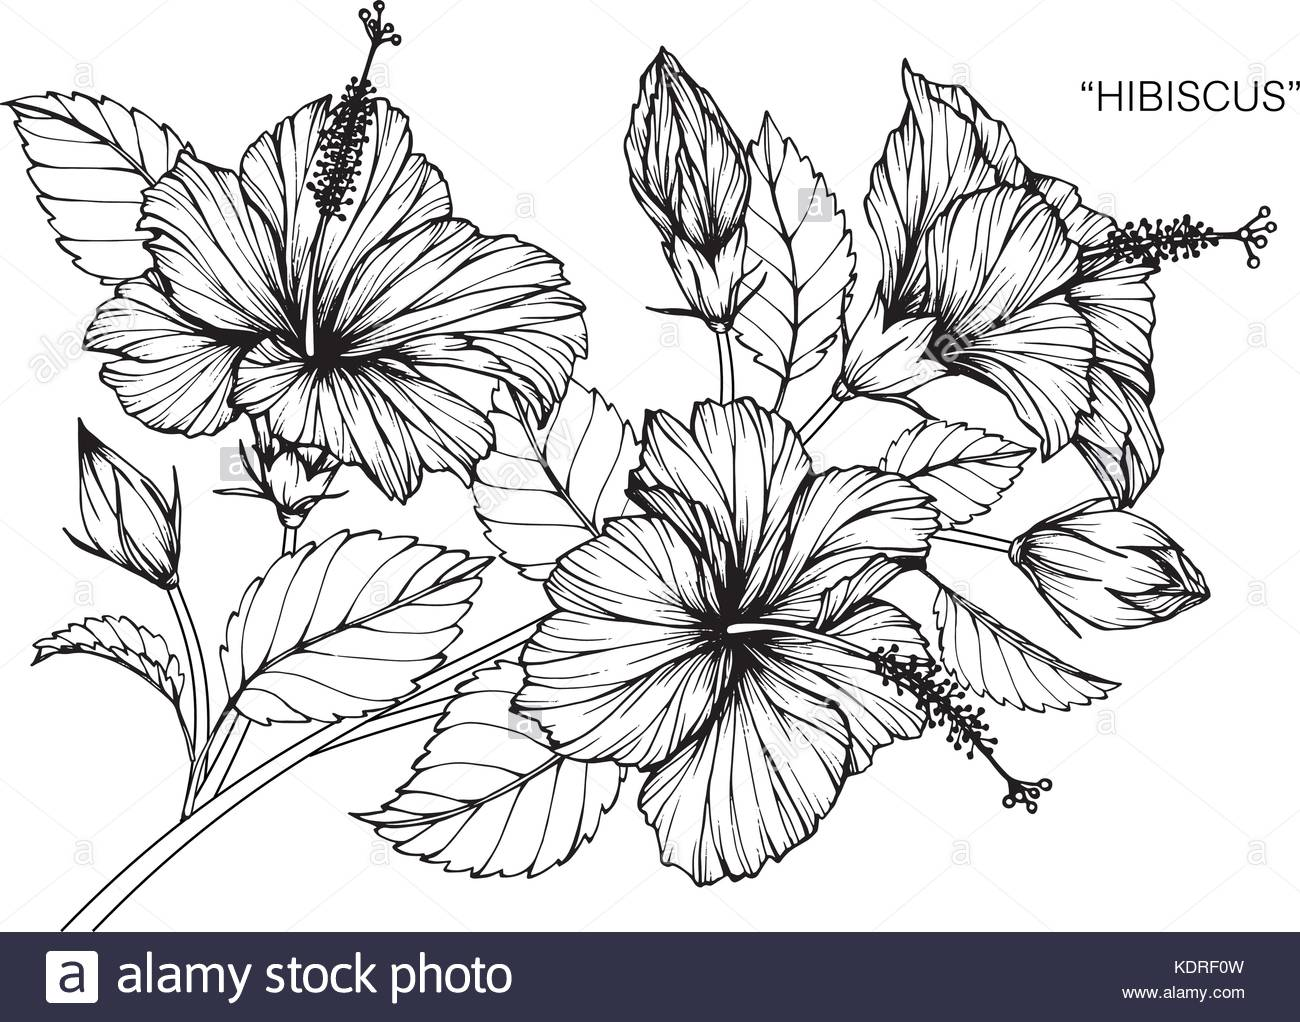 1300x1022 Hibiscus Flower Drawing Illustration. Black And White With Line